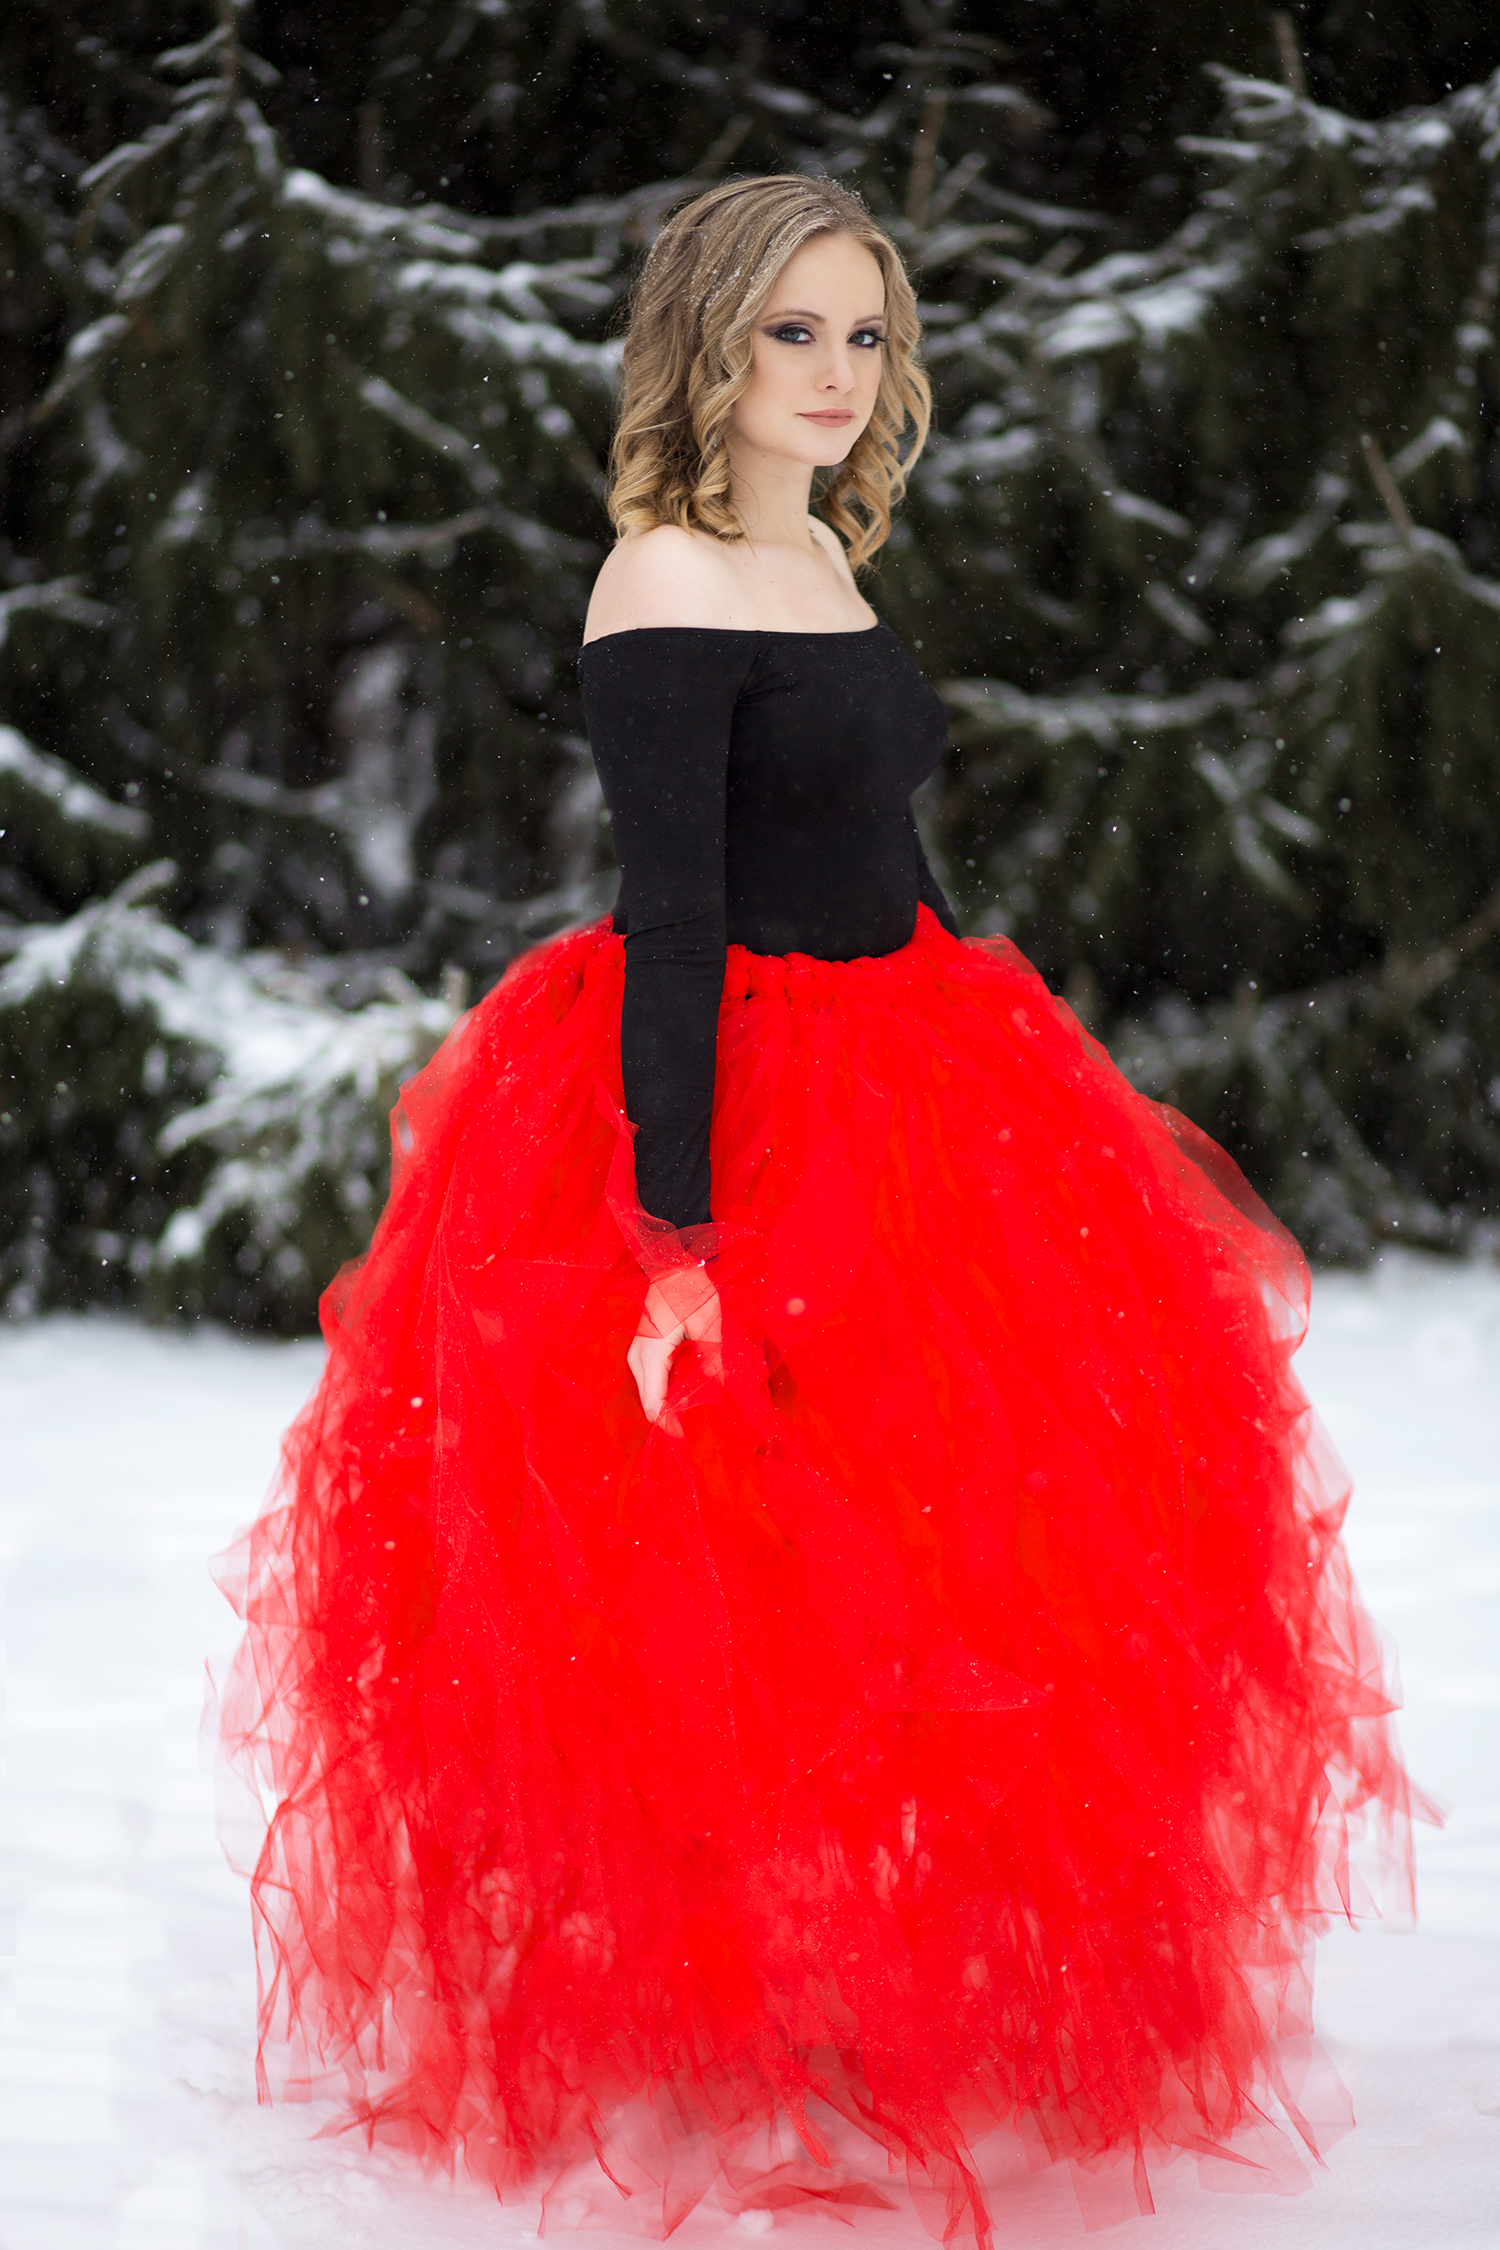 A girl in a red tulle skirt and black off the shoulder top posing in the snow.